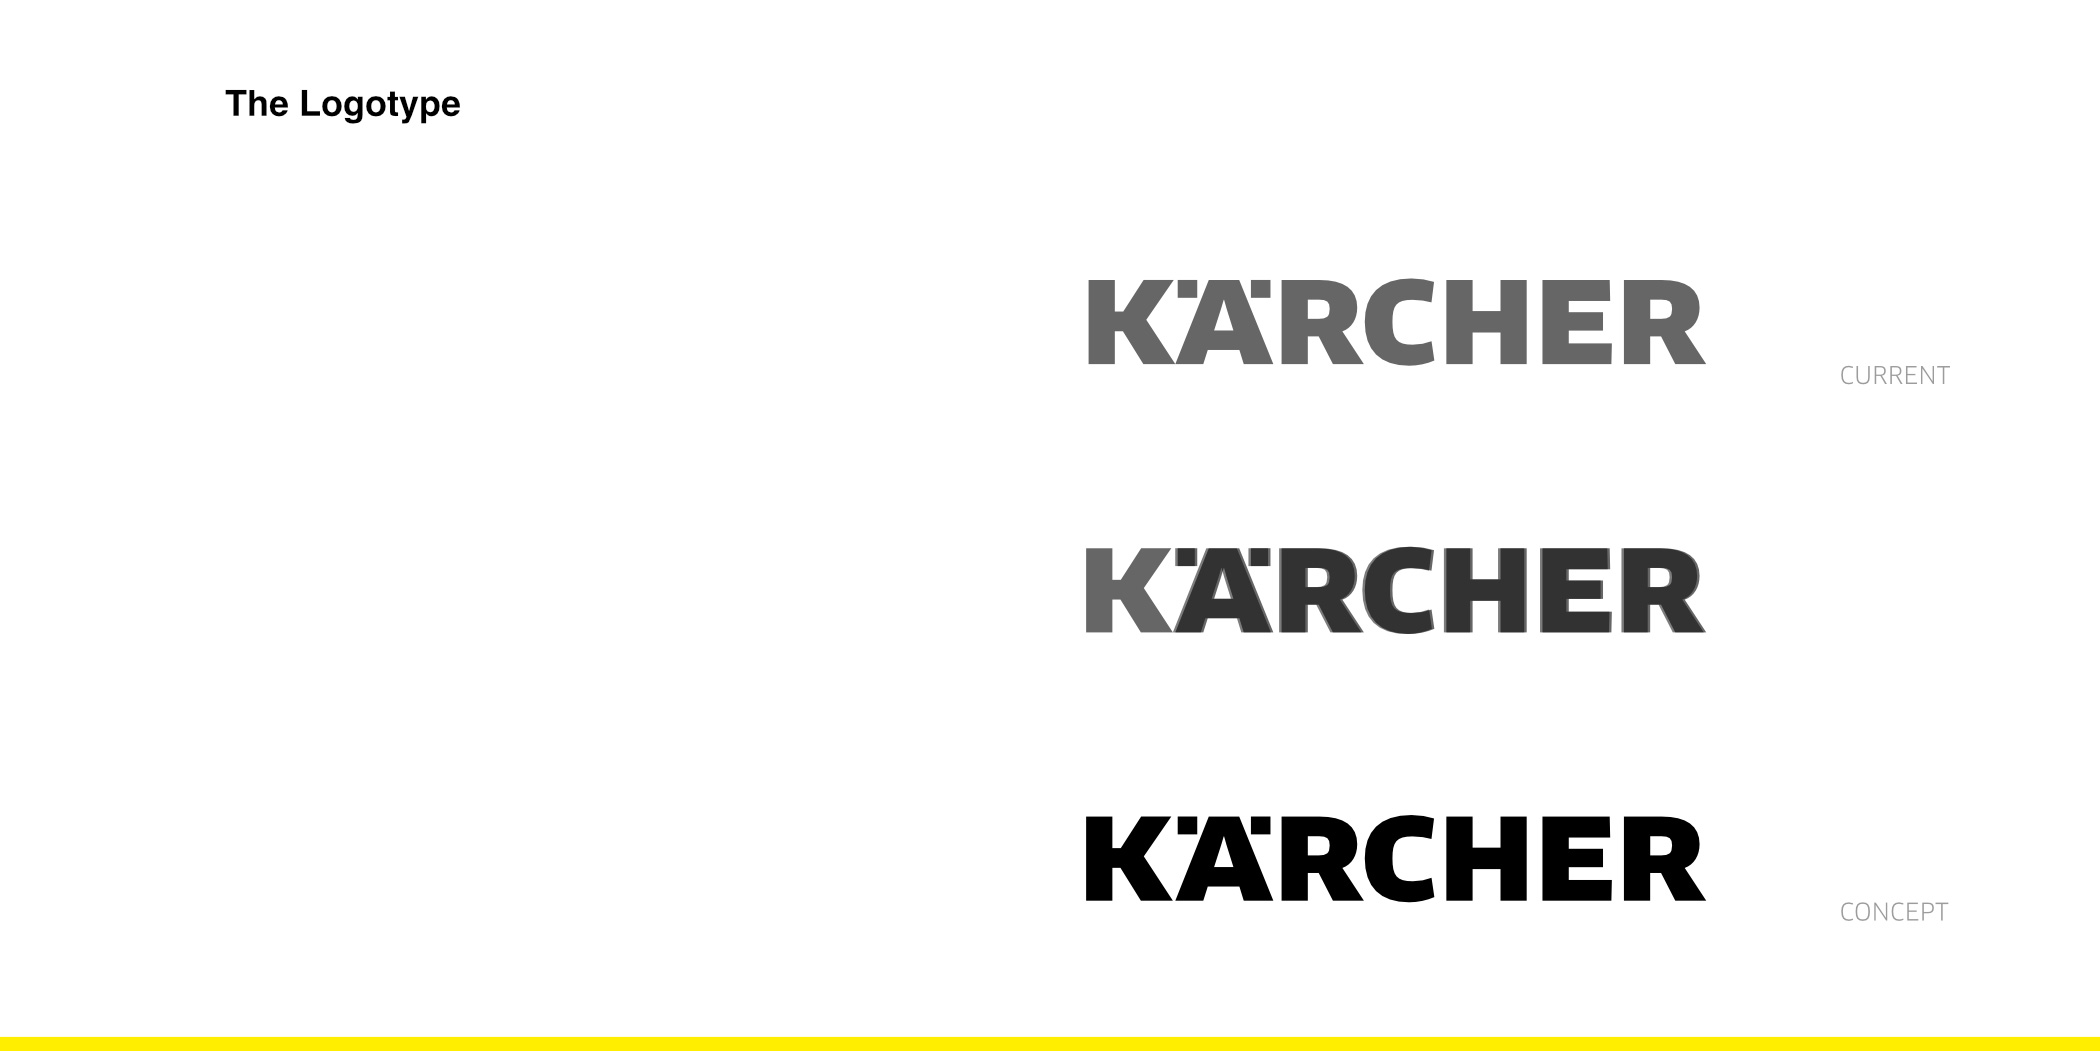 Kärcher - redesign concept: Logotype evolution